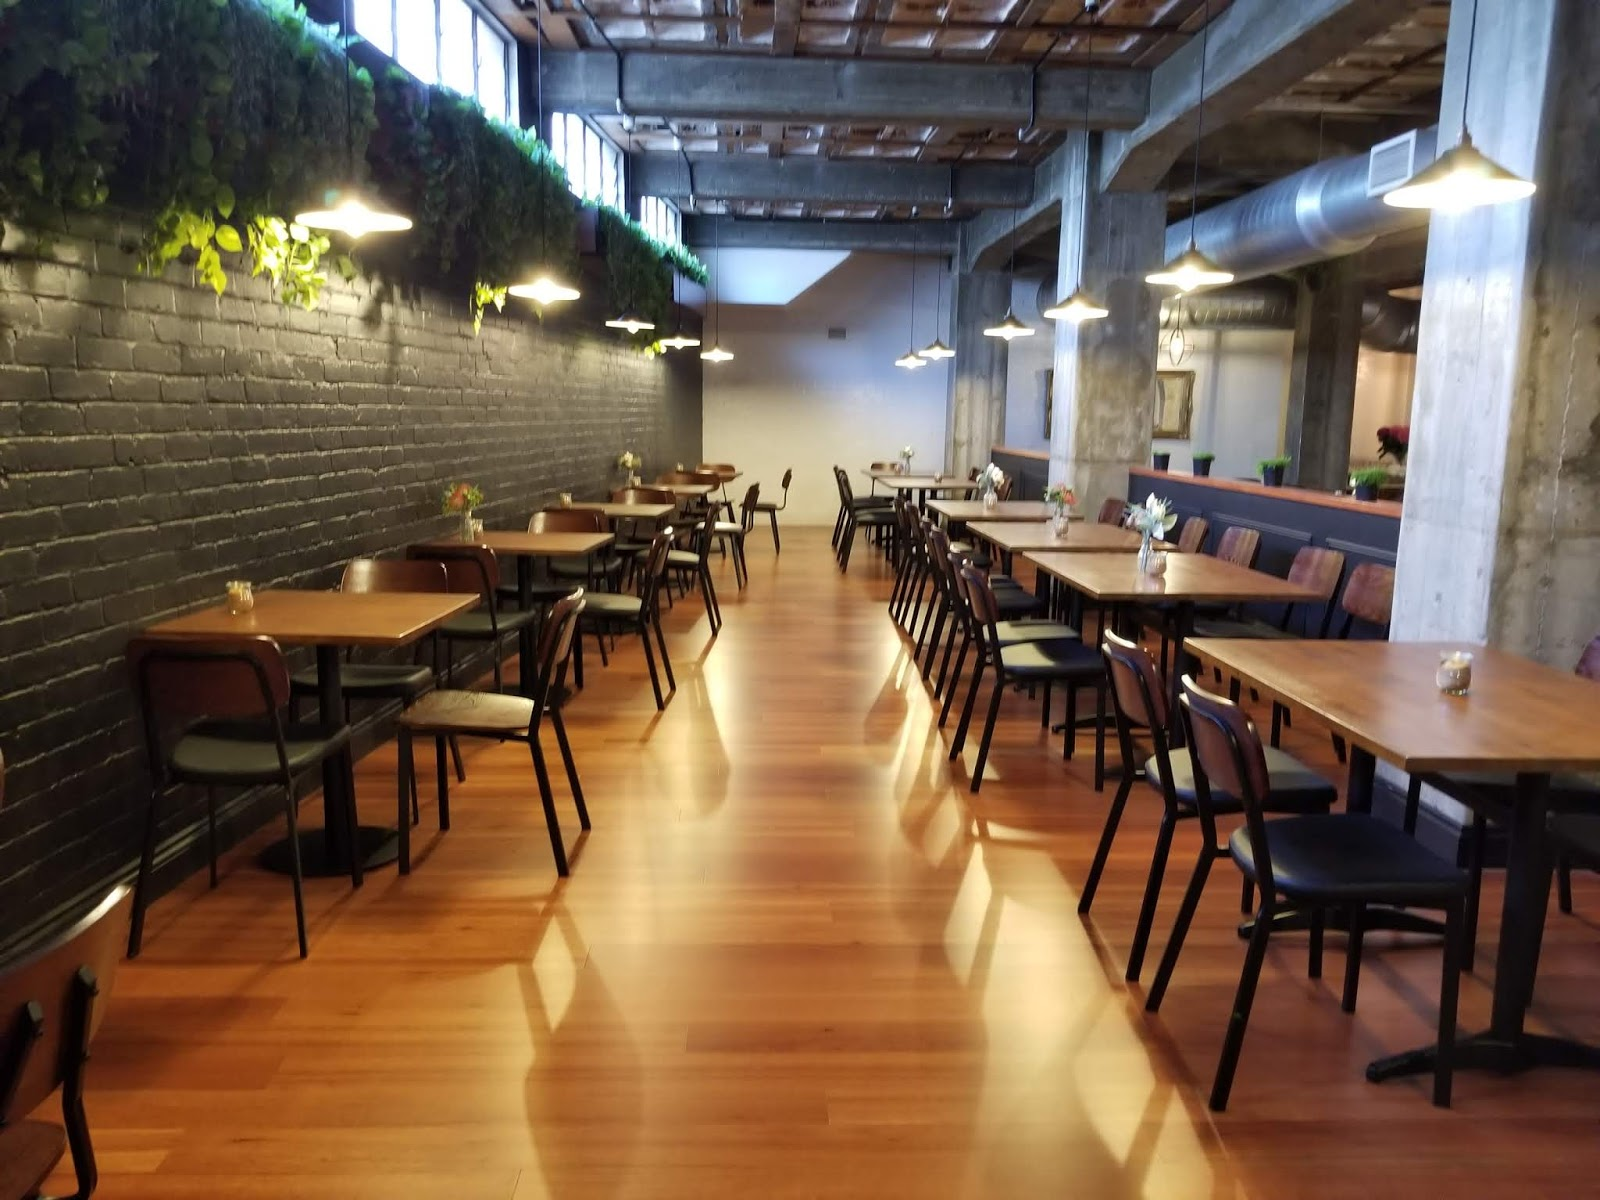 The Interior Is Quite Large For A Cafe Being Inspired By Cafes In Melbourne It Had A Very Alternate Rustic Charm To It